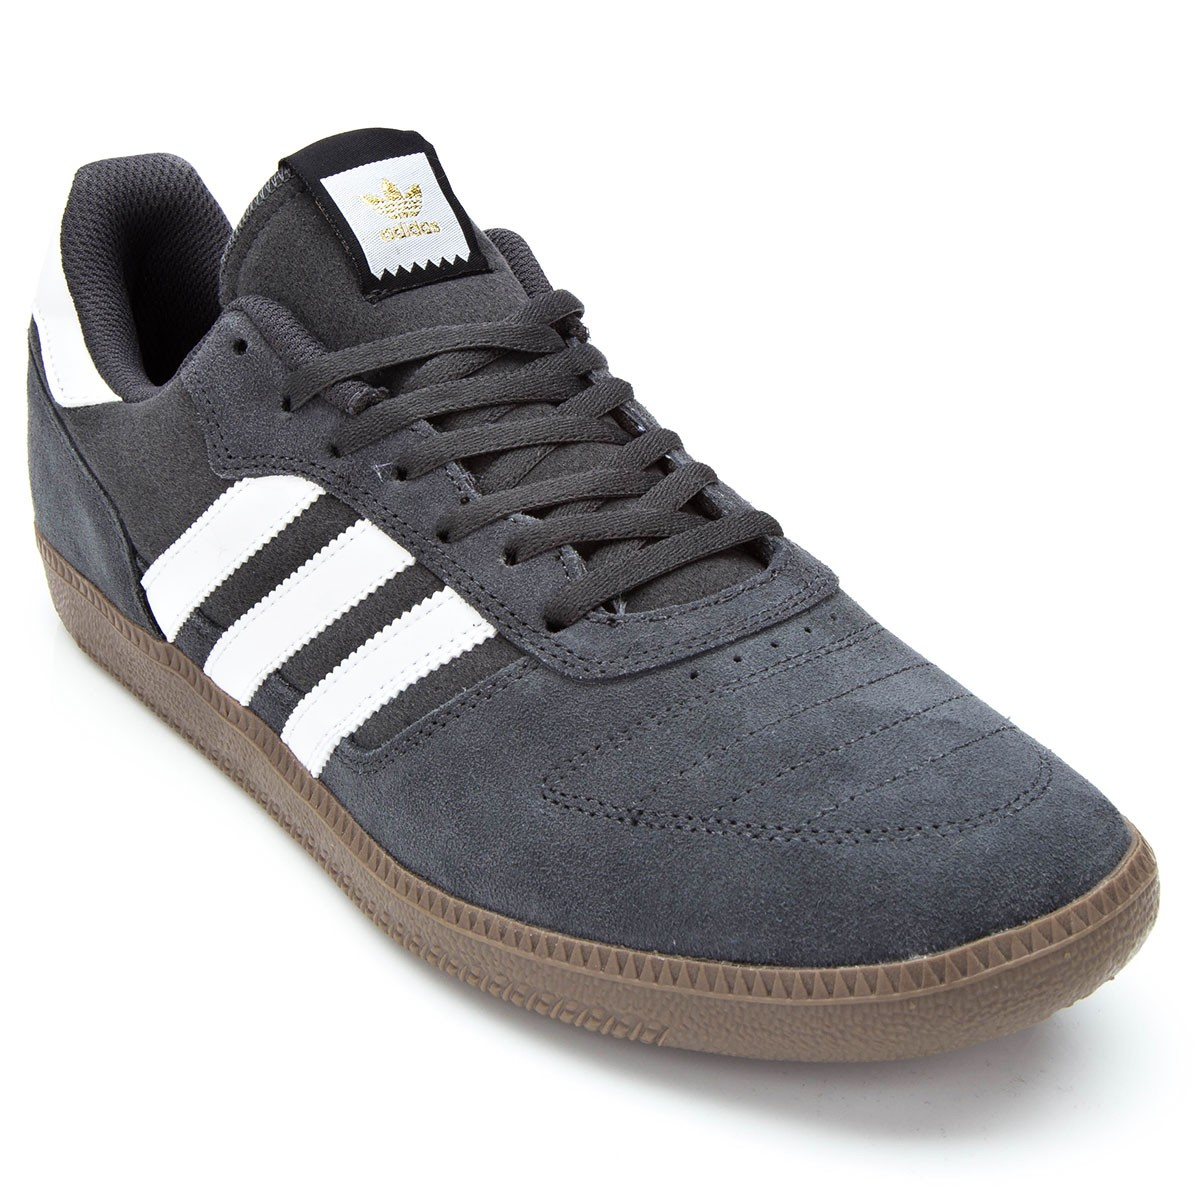 For Mens Adidas Mens Skate Trainers Grey Shoes Copa Grey